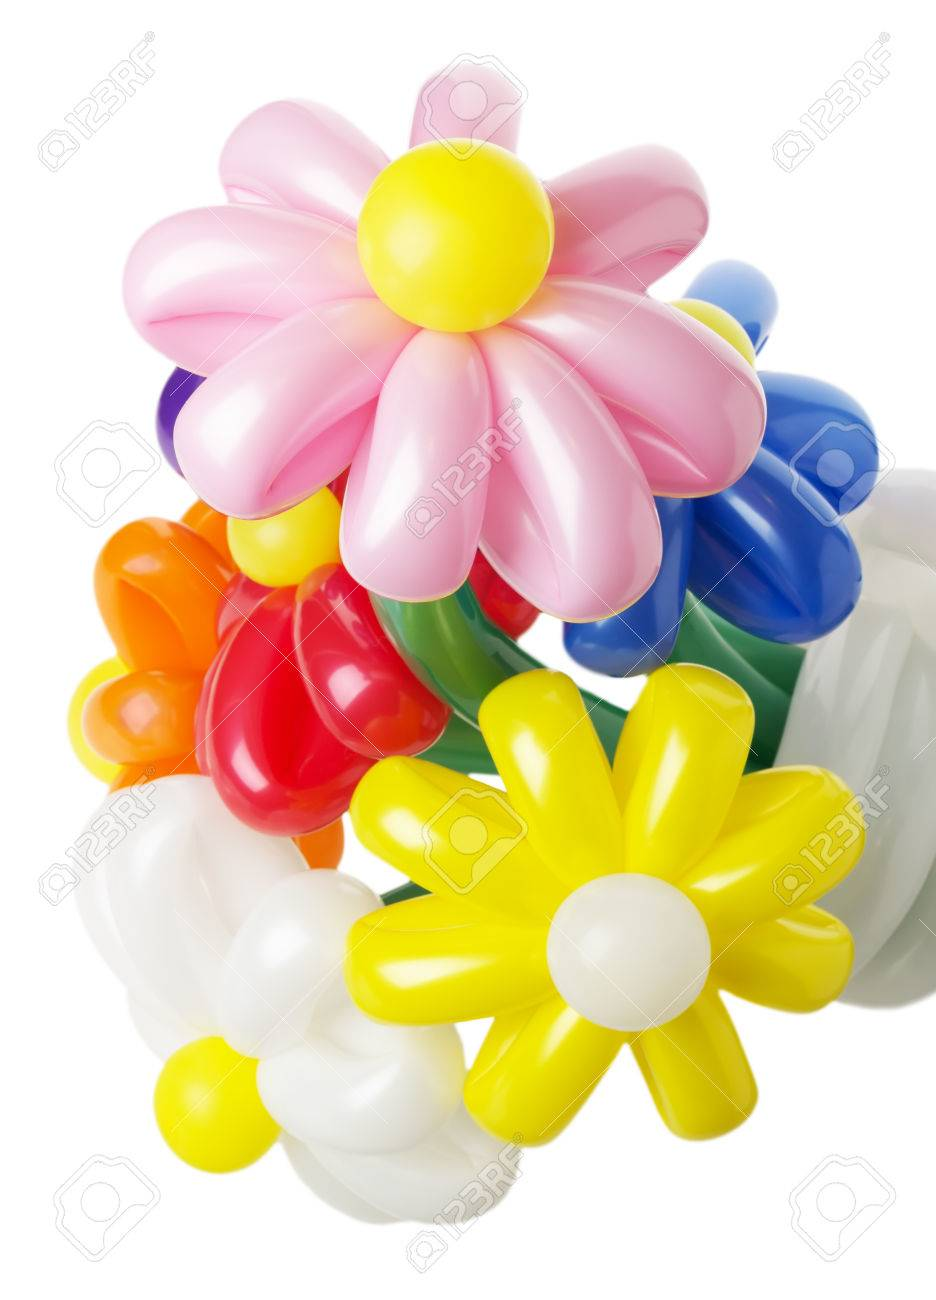 Bouquet With Colorful Balloon Flowers On The White Background. Stock ...